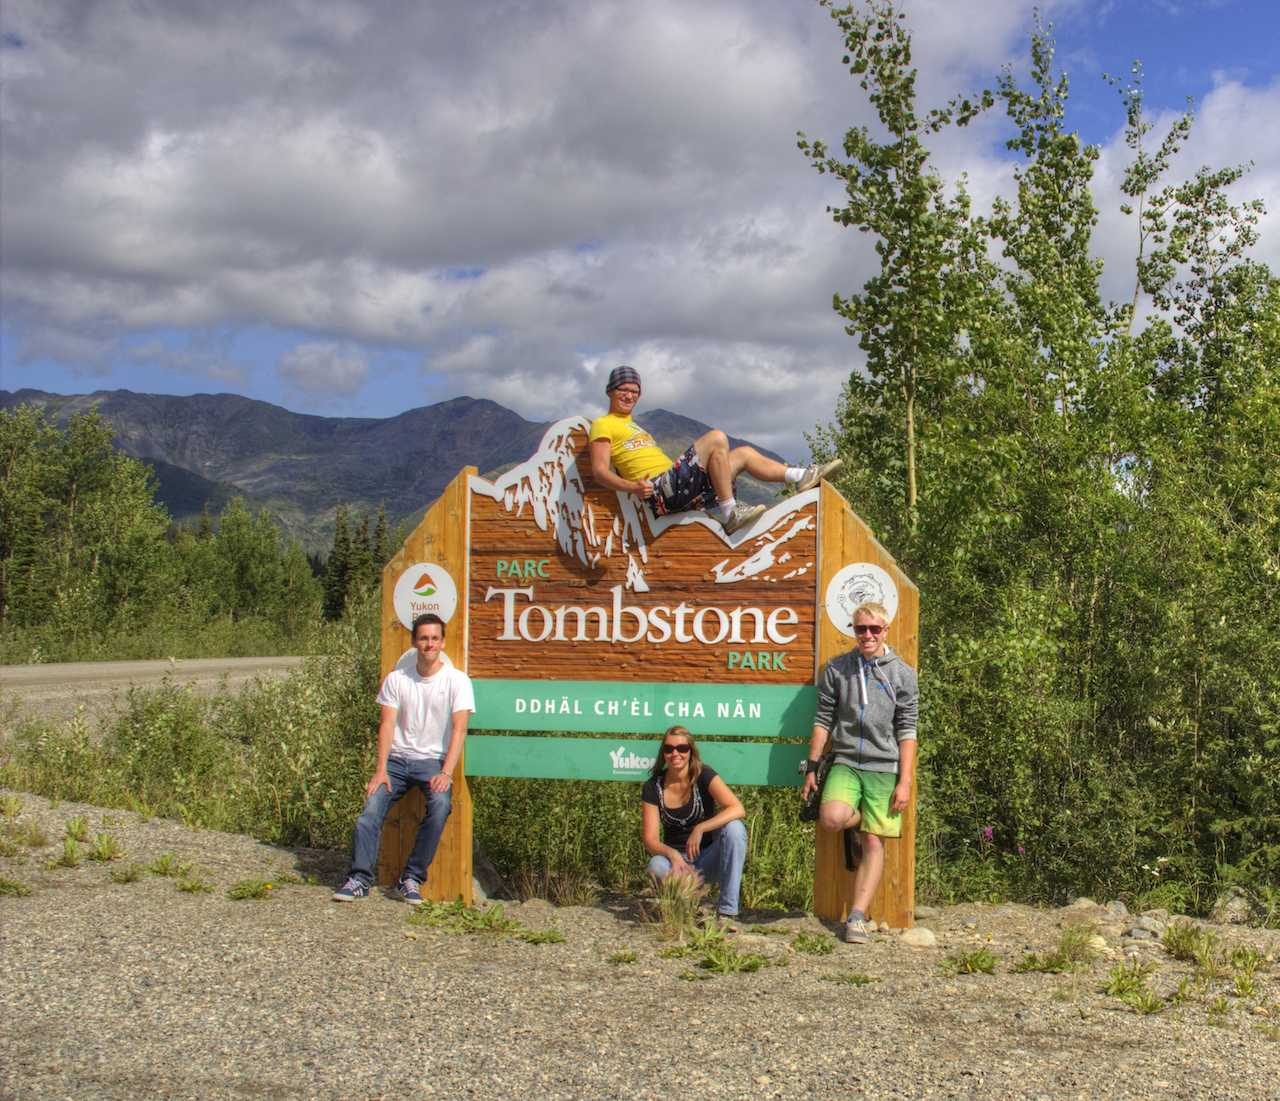 Tombstone Provincial Park